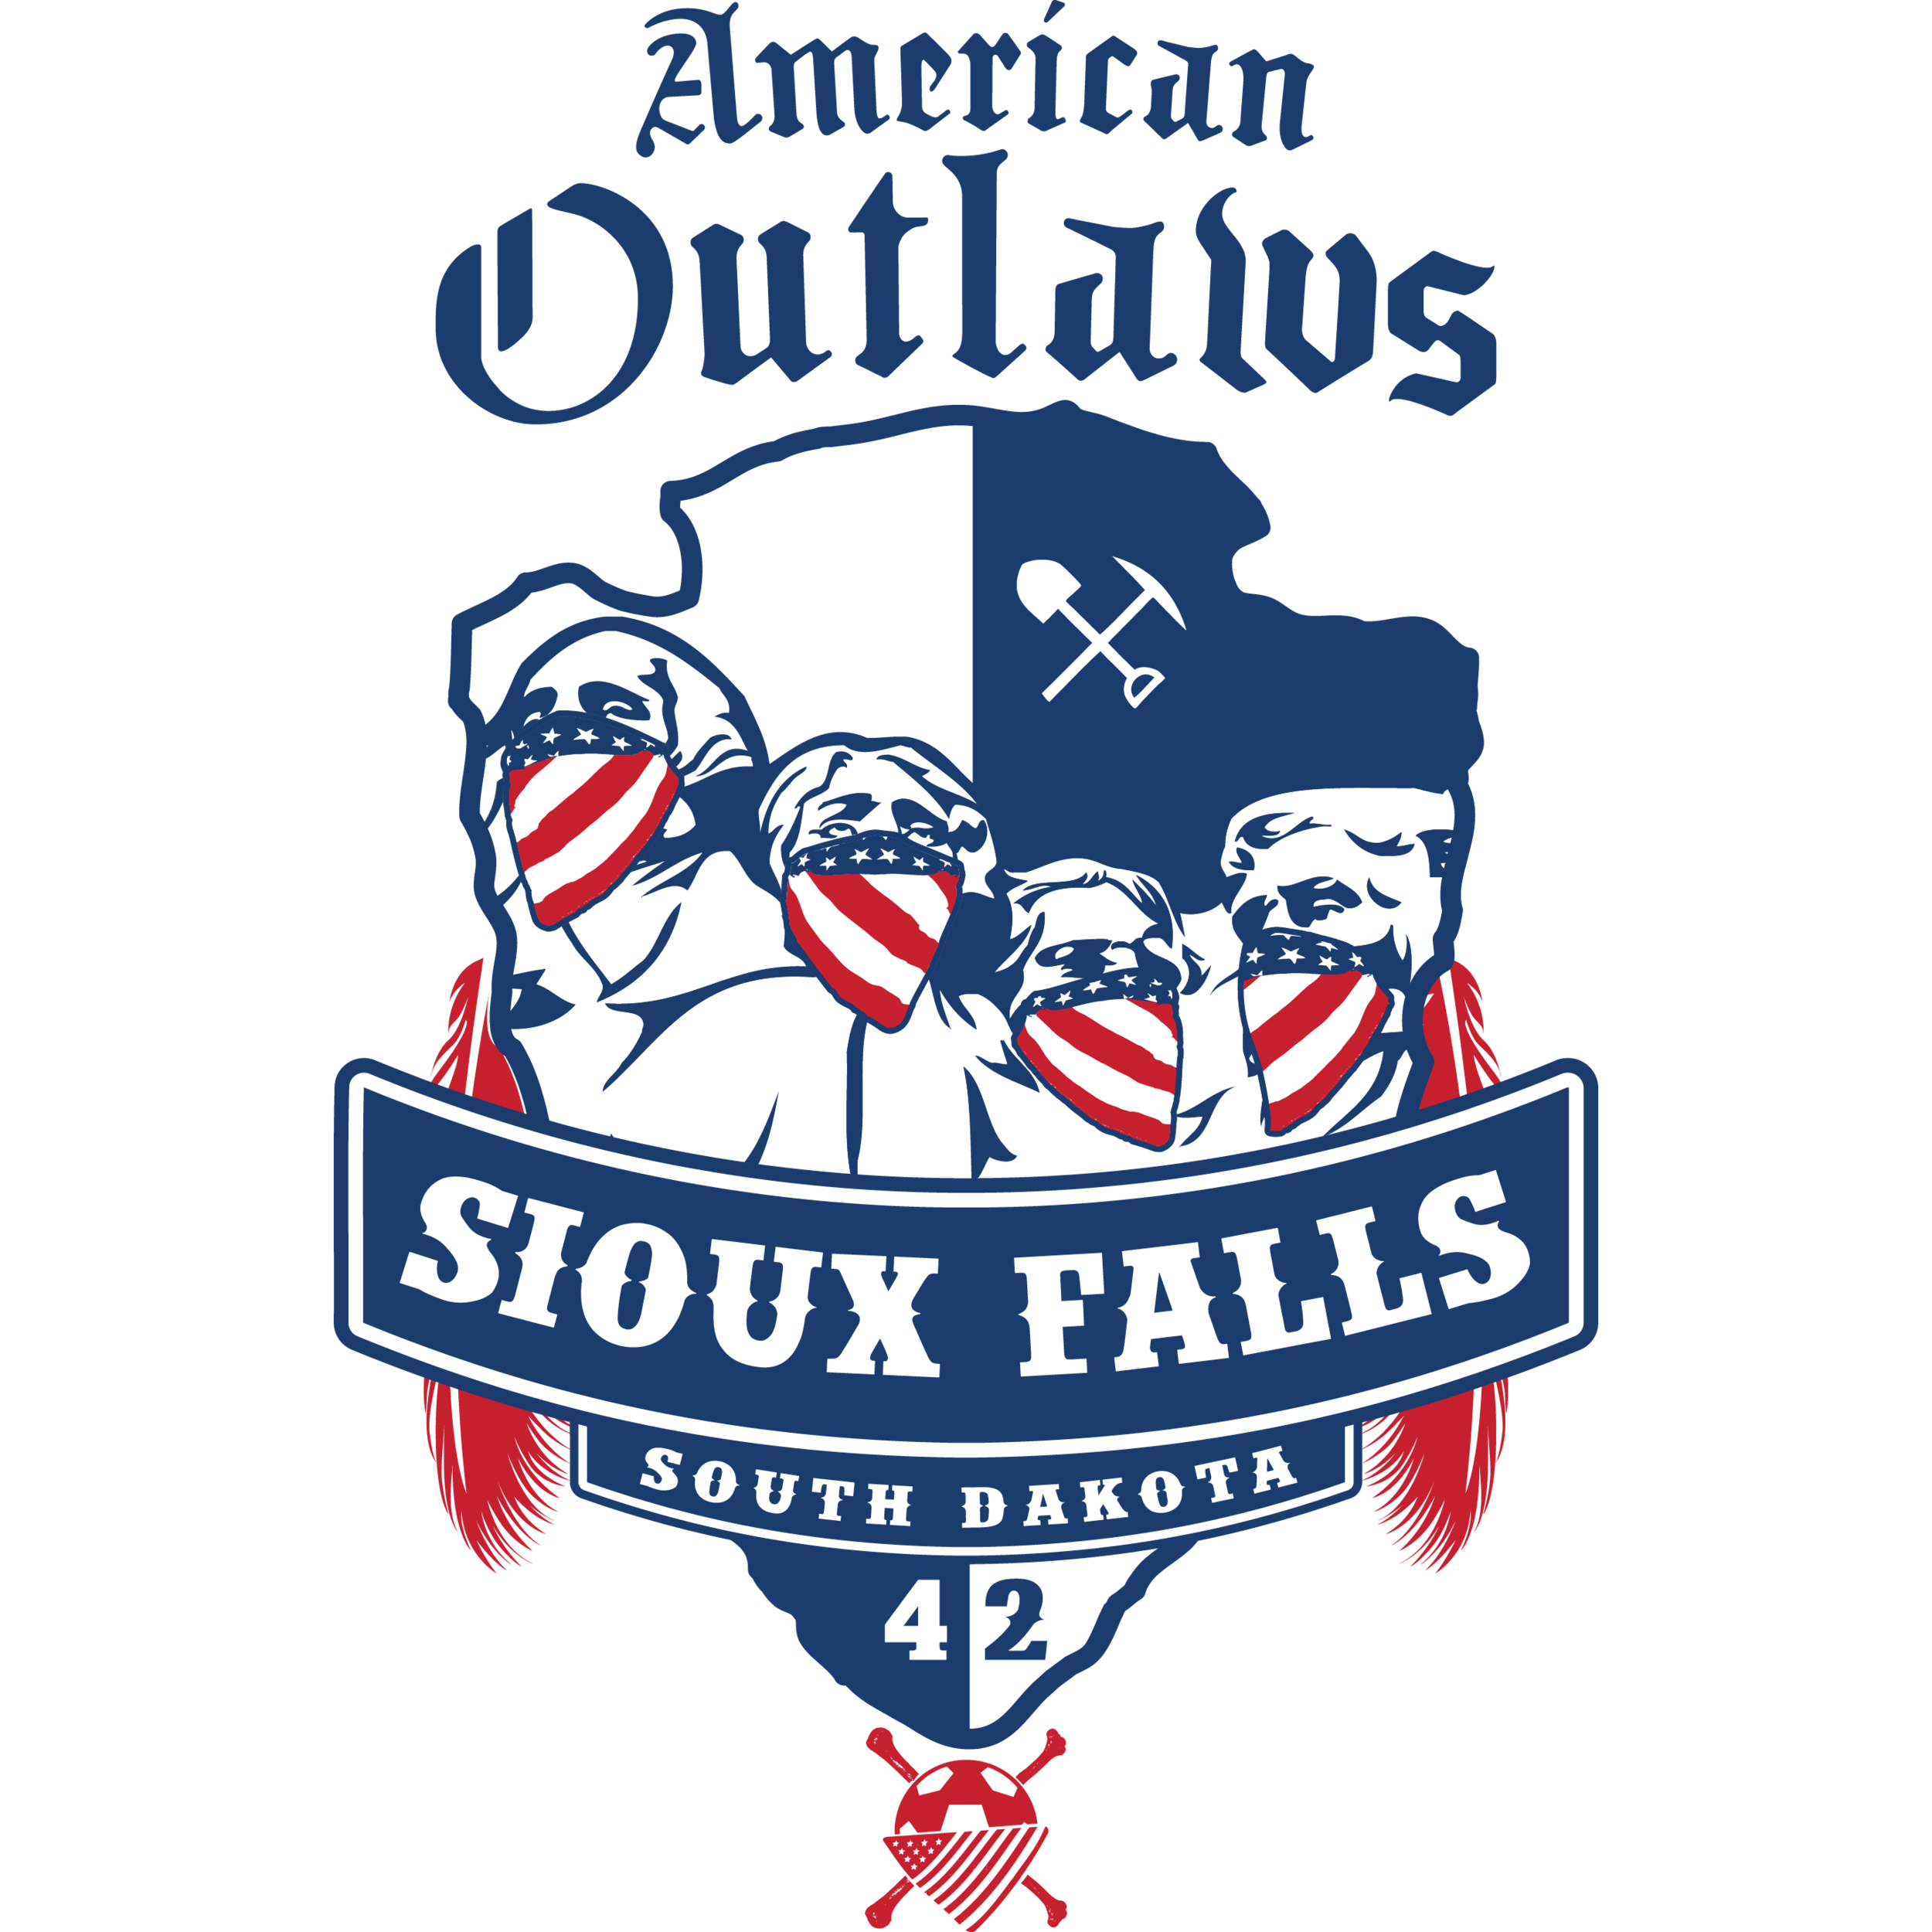 AO_Sioux_Falls_42 (1).png